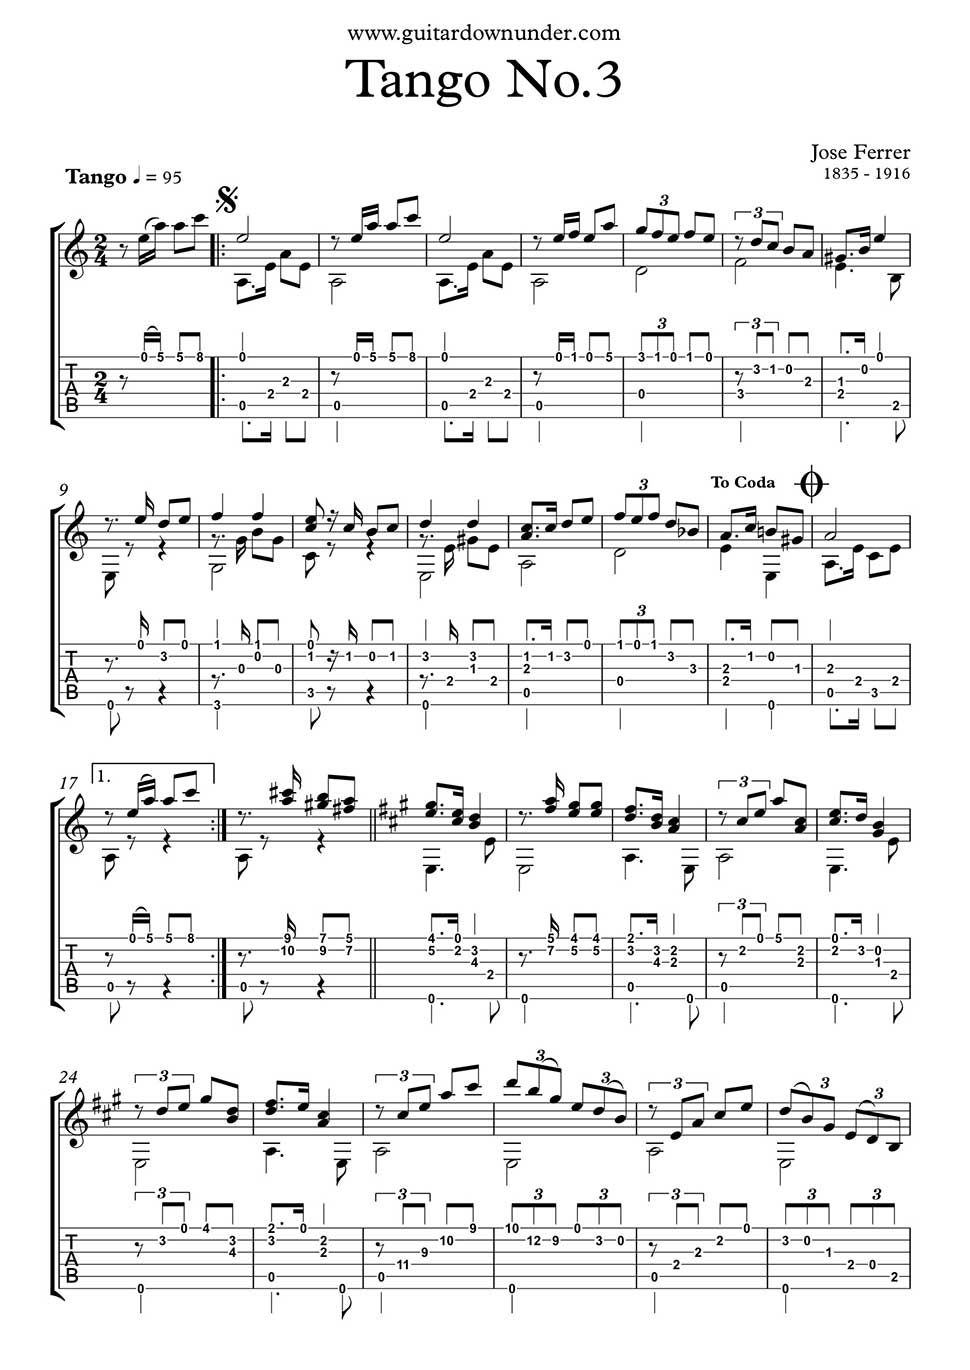 Tango no 3 by jose ferrer for classical guitar in tab and notation 3 by jose ferrer for classical guitar in tab and notation guitar sheet musicspanish biocorpaavc Image collections